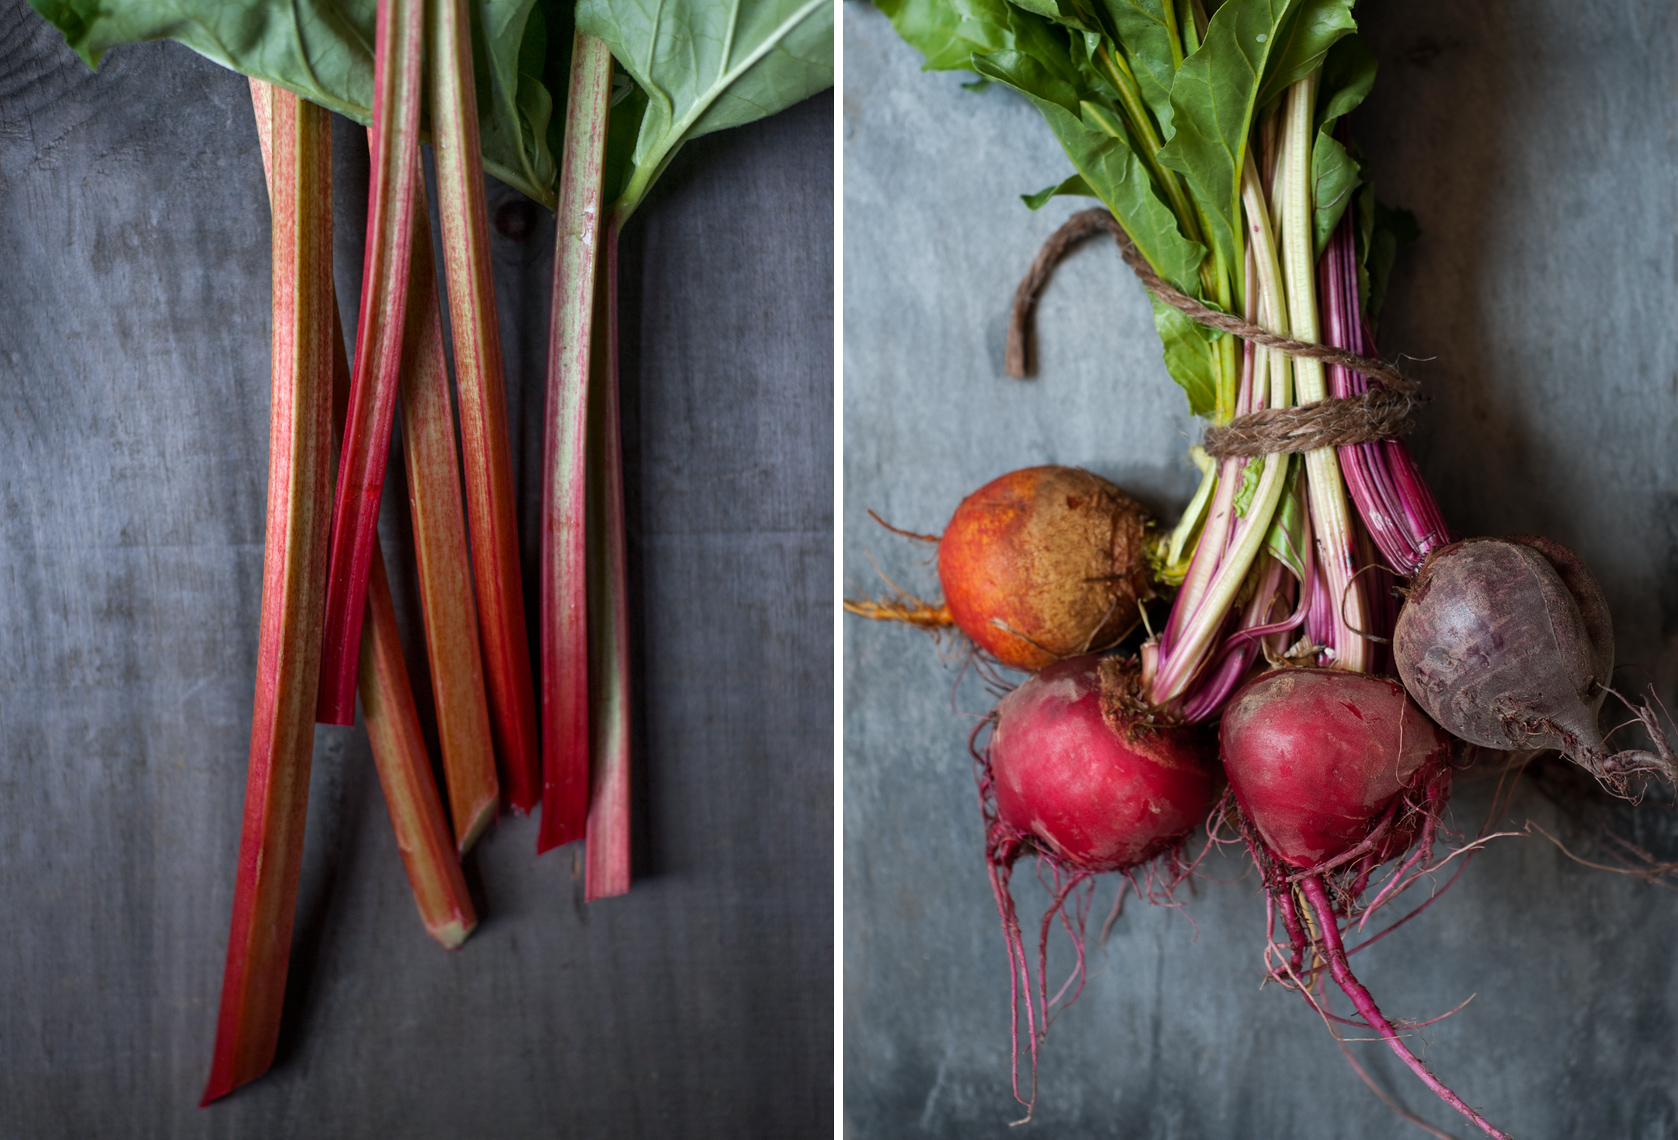 rhubarb and beets